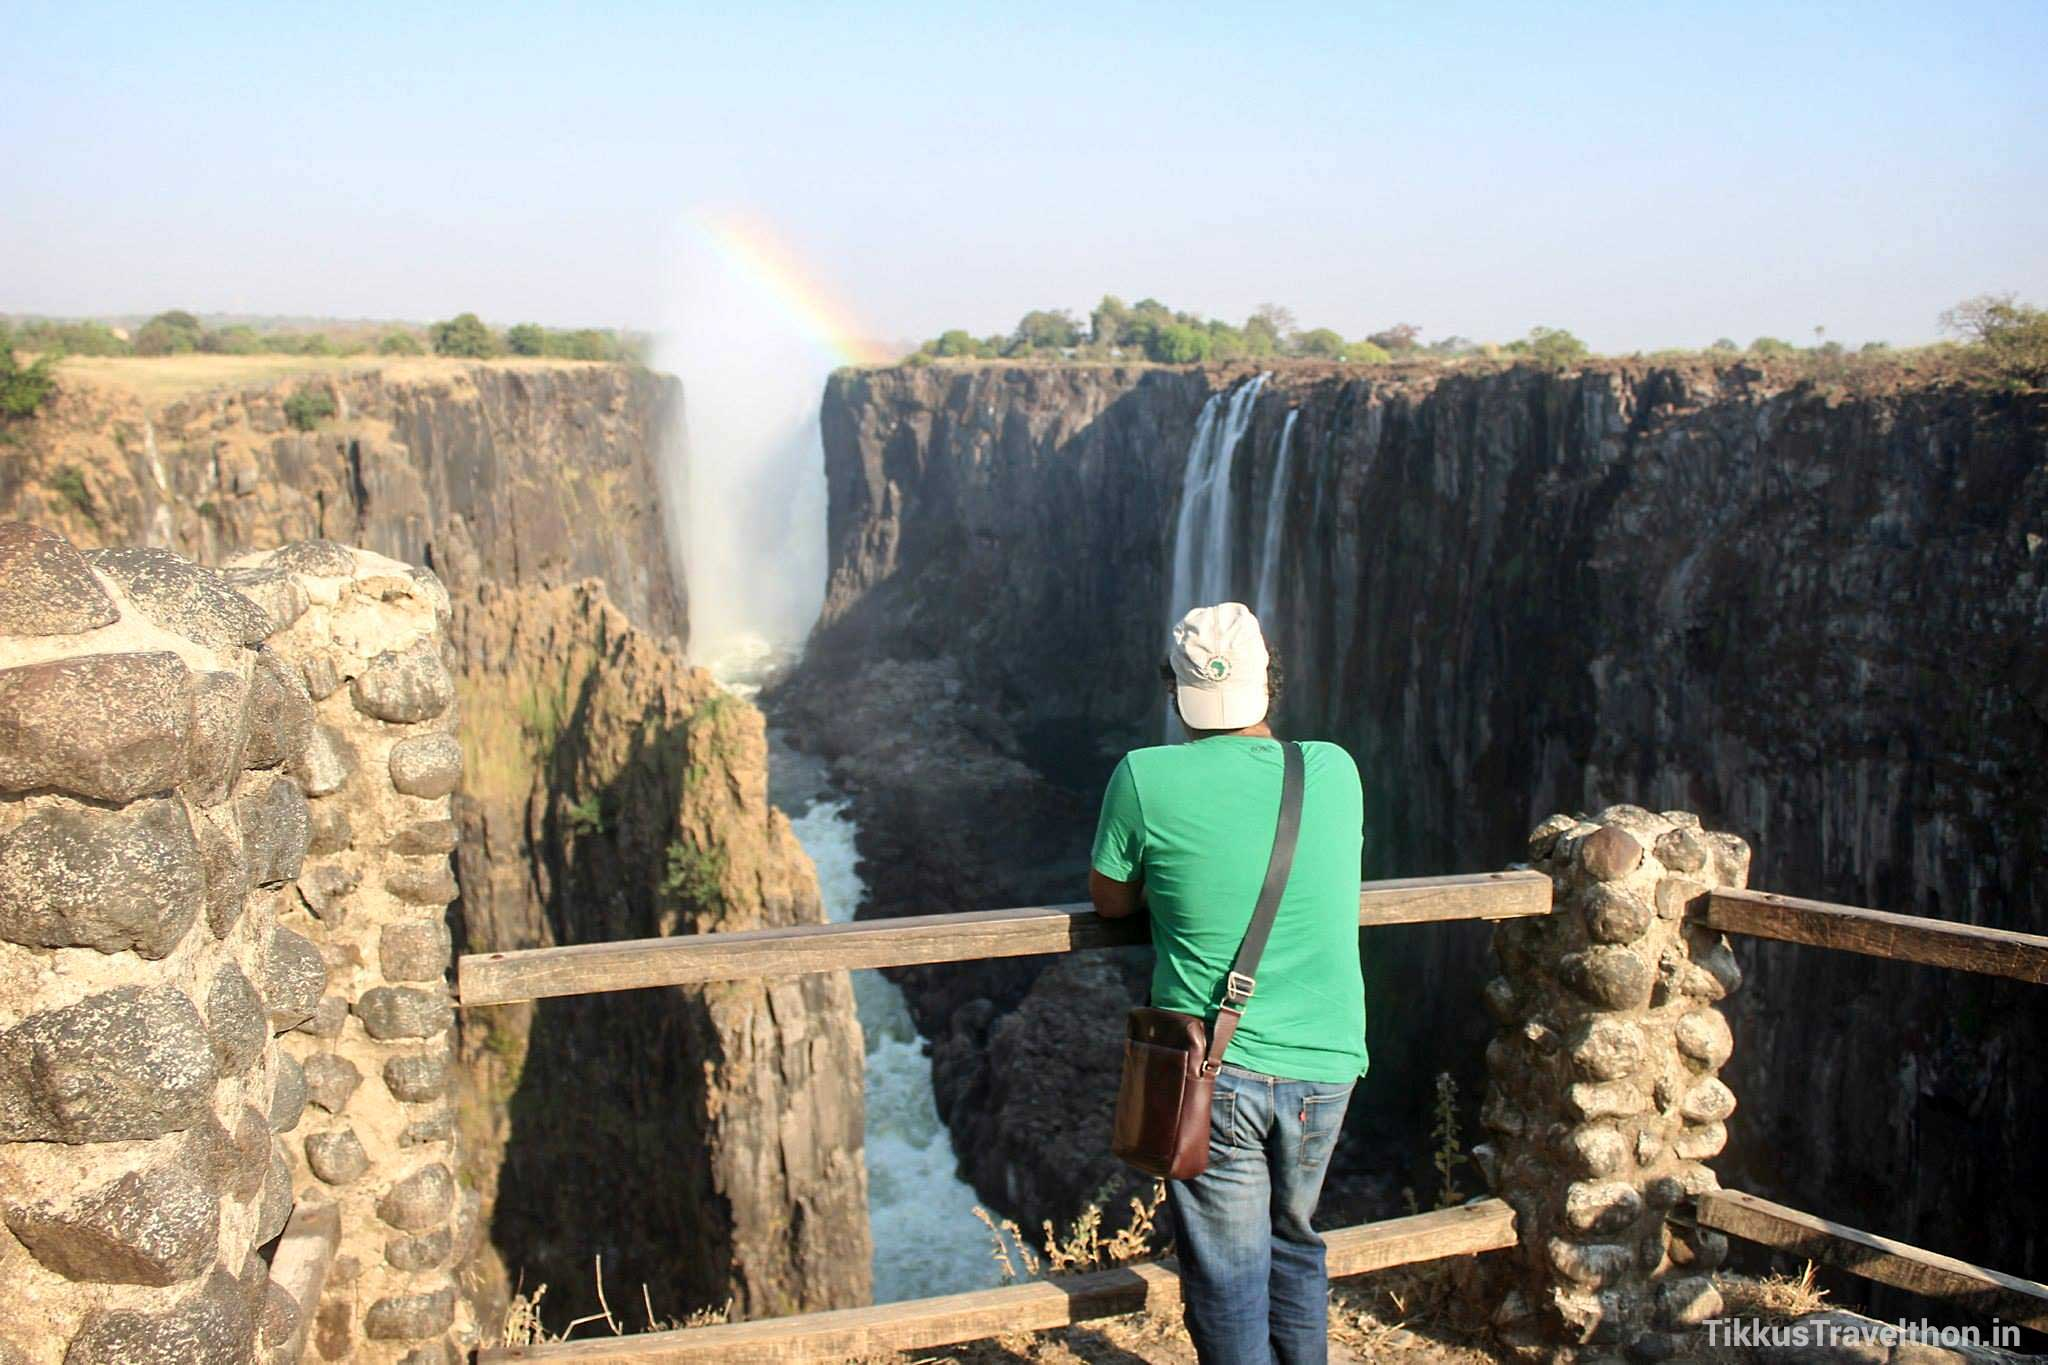 Contemplating the Beauty of Nature's Magical Miasma, deep inside southern Africa on the river Zambezi!